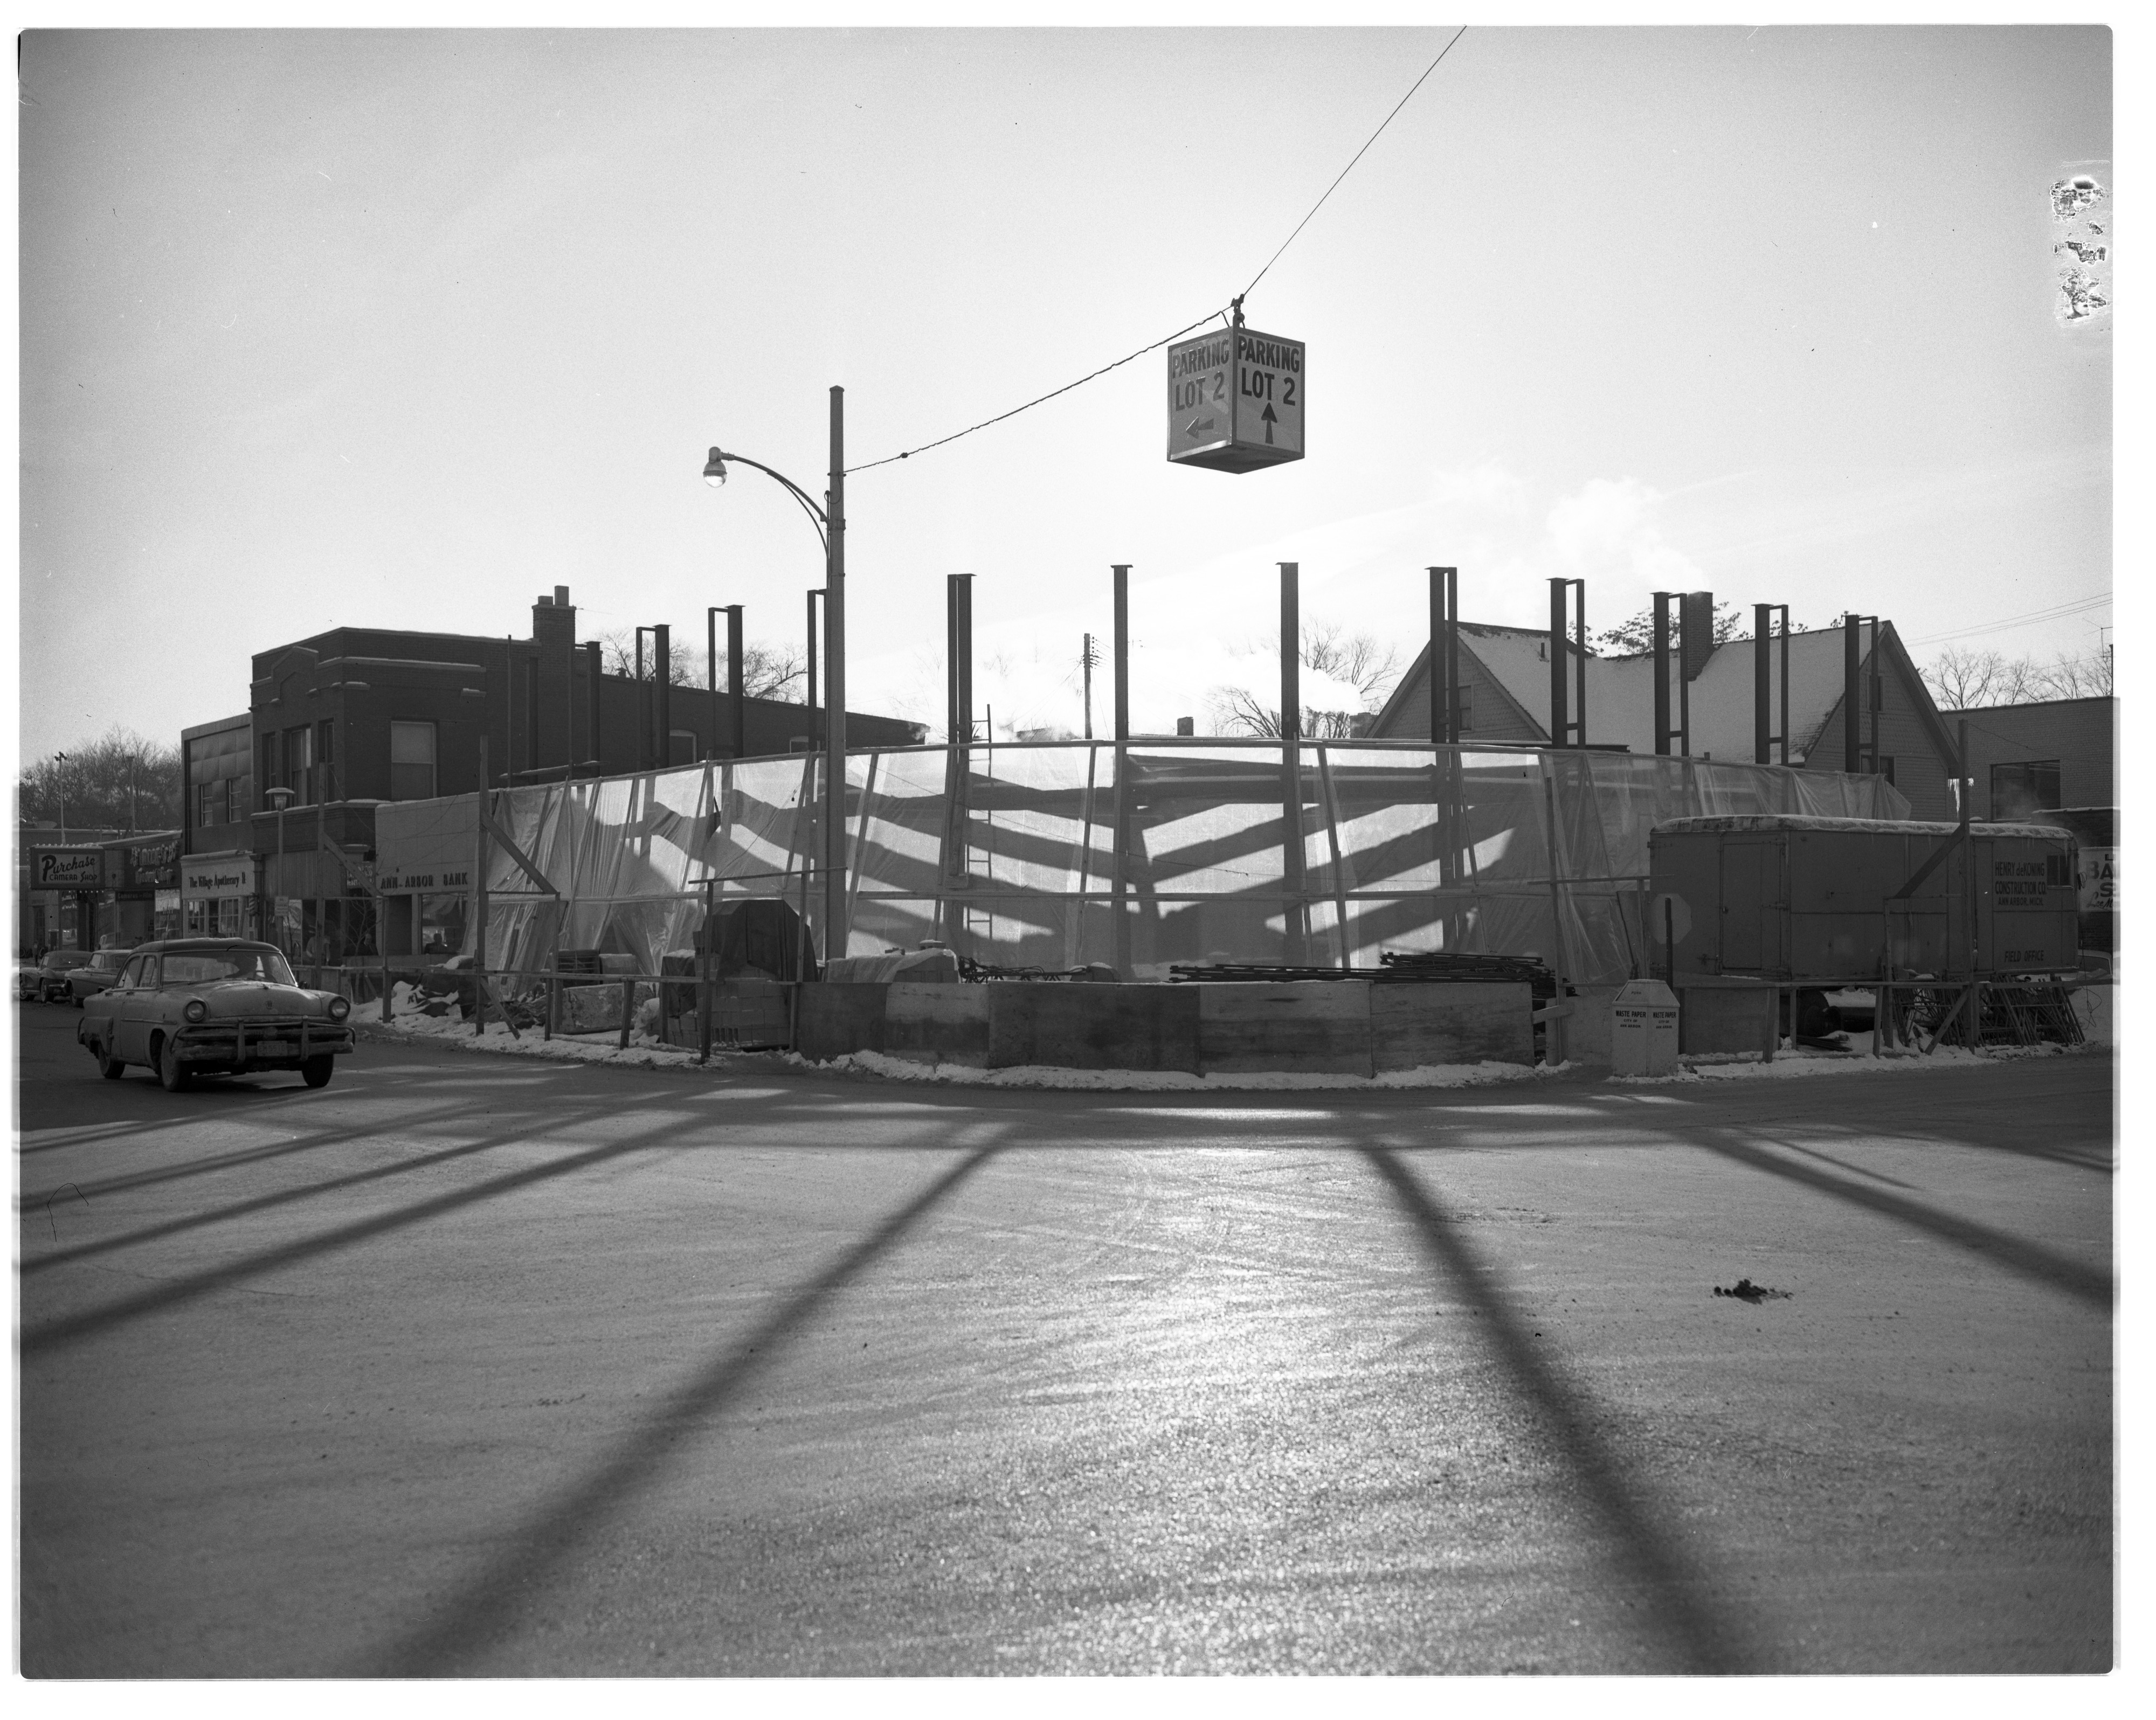 Plastic Cover Around Bank at S. University and E. University, February 1963 image